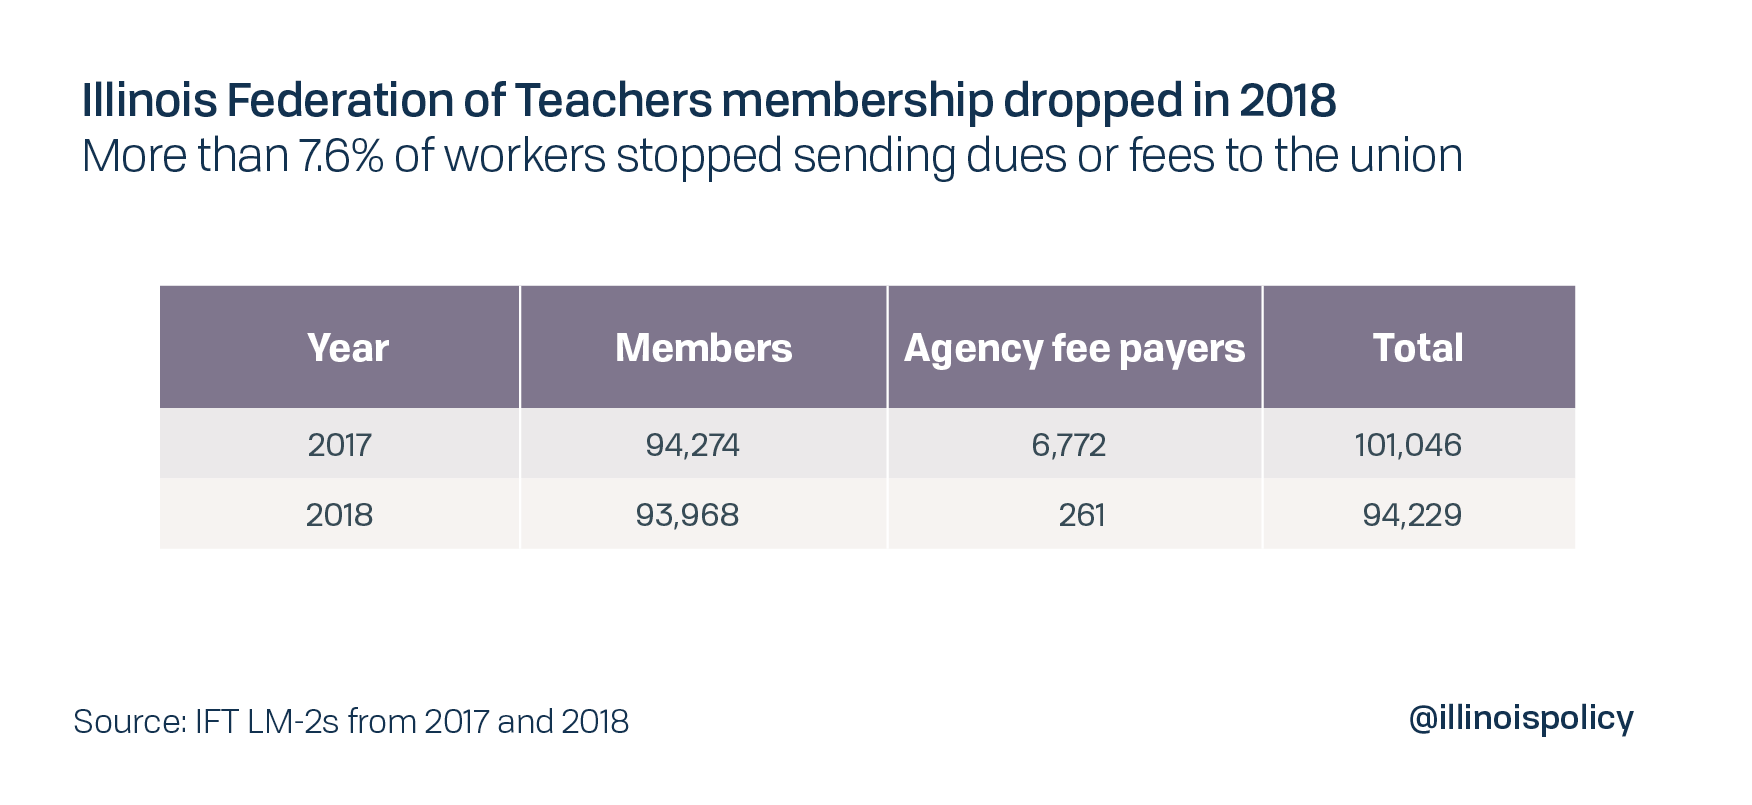 Illinois Federation of Teachers membership dropped in 2018